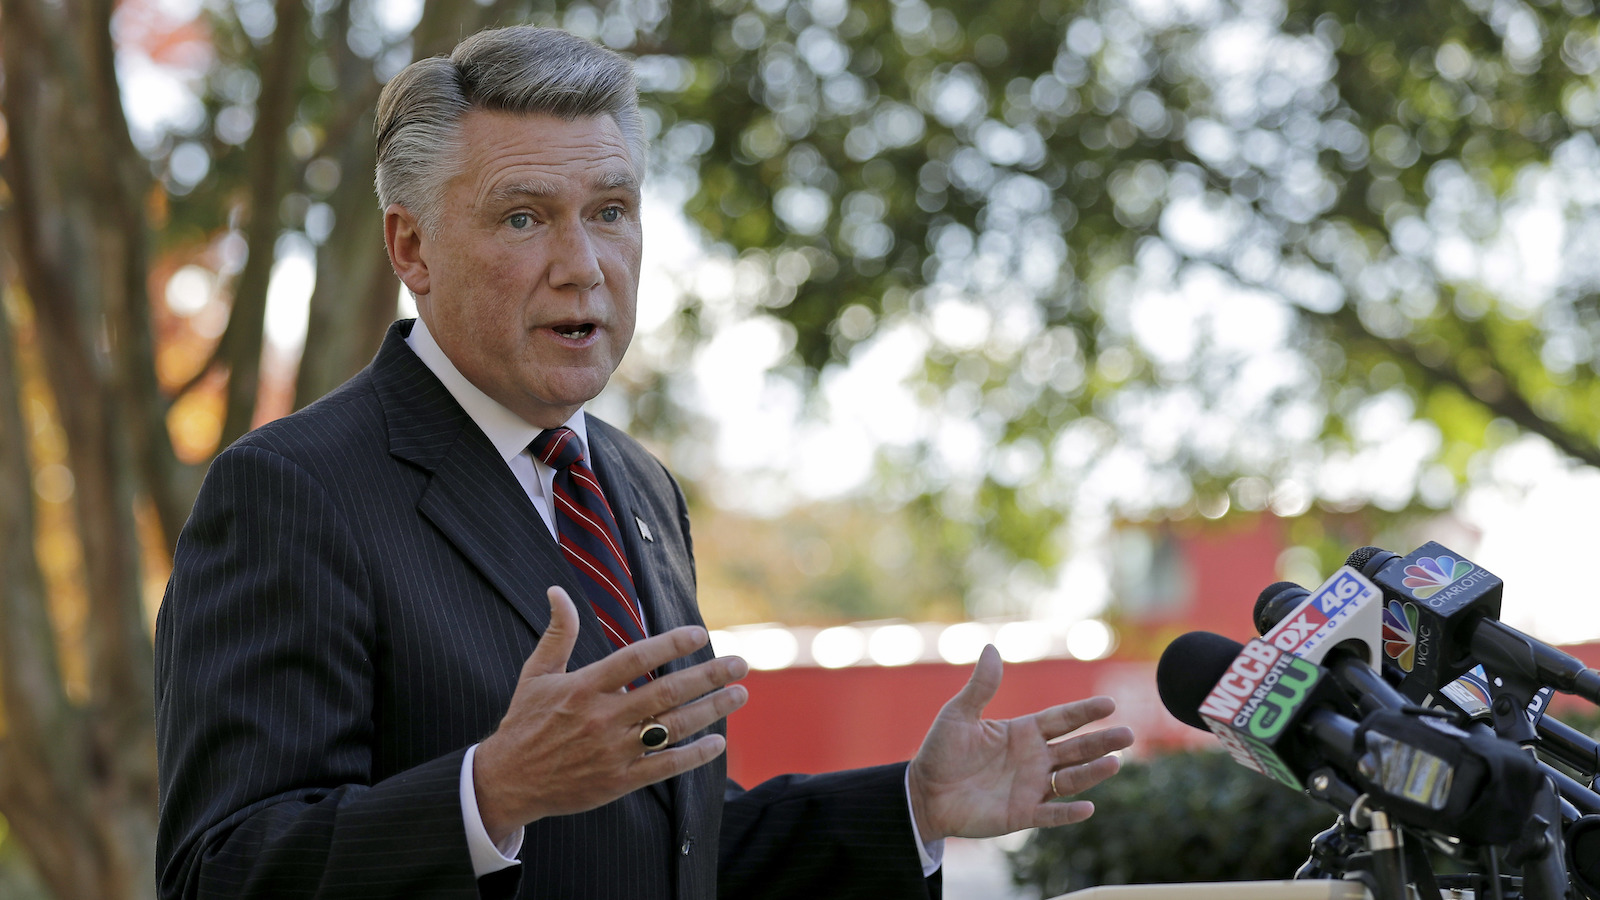 Mark Harris speaks to the media during a news conference in Matthews, N.C., on Nov. 7, 2018. Harris is leading Dan McCready for the 9th Congressional District in a race that is still too close to call. (AP Photo/Chuck Burton)